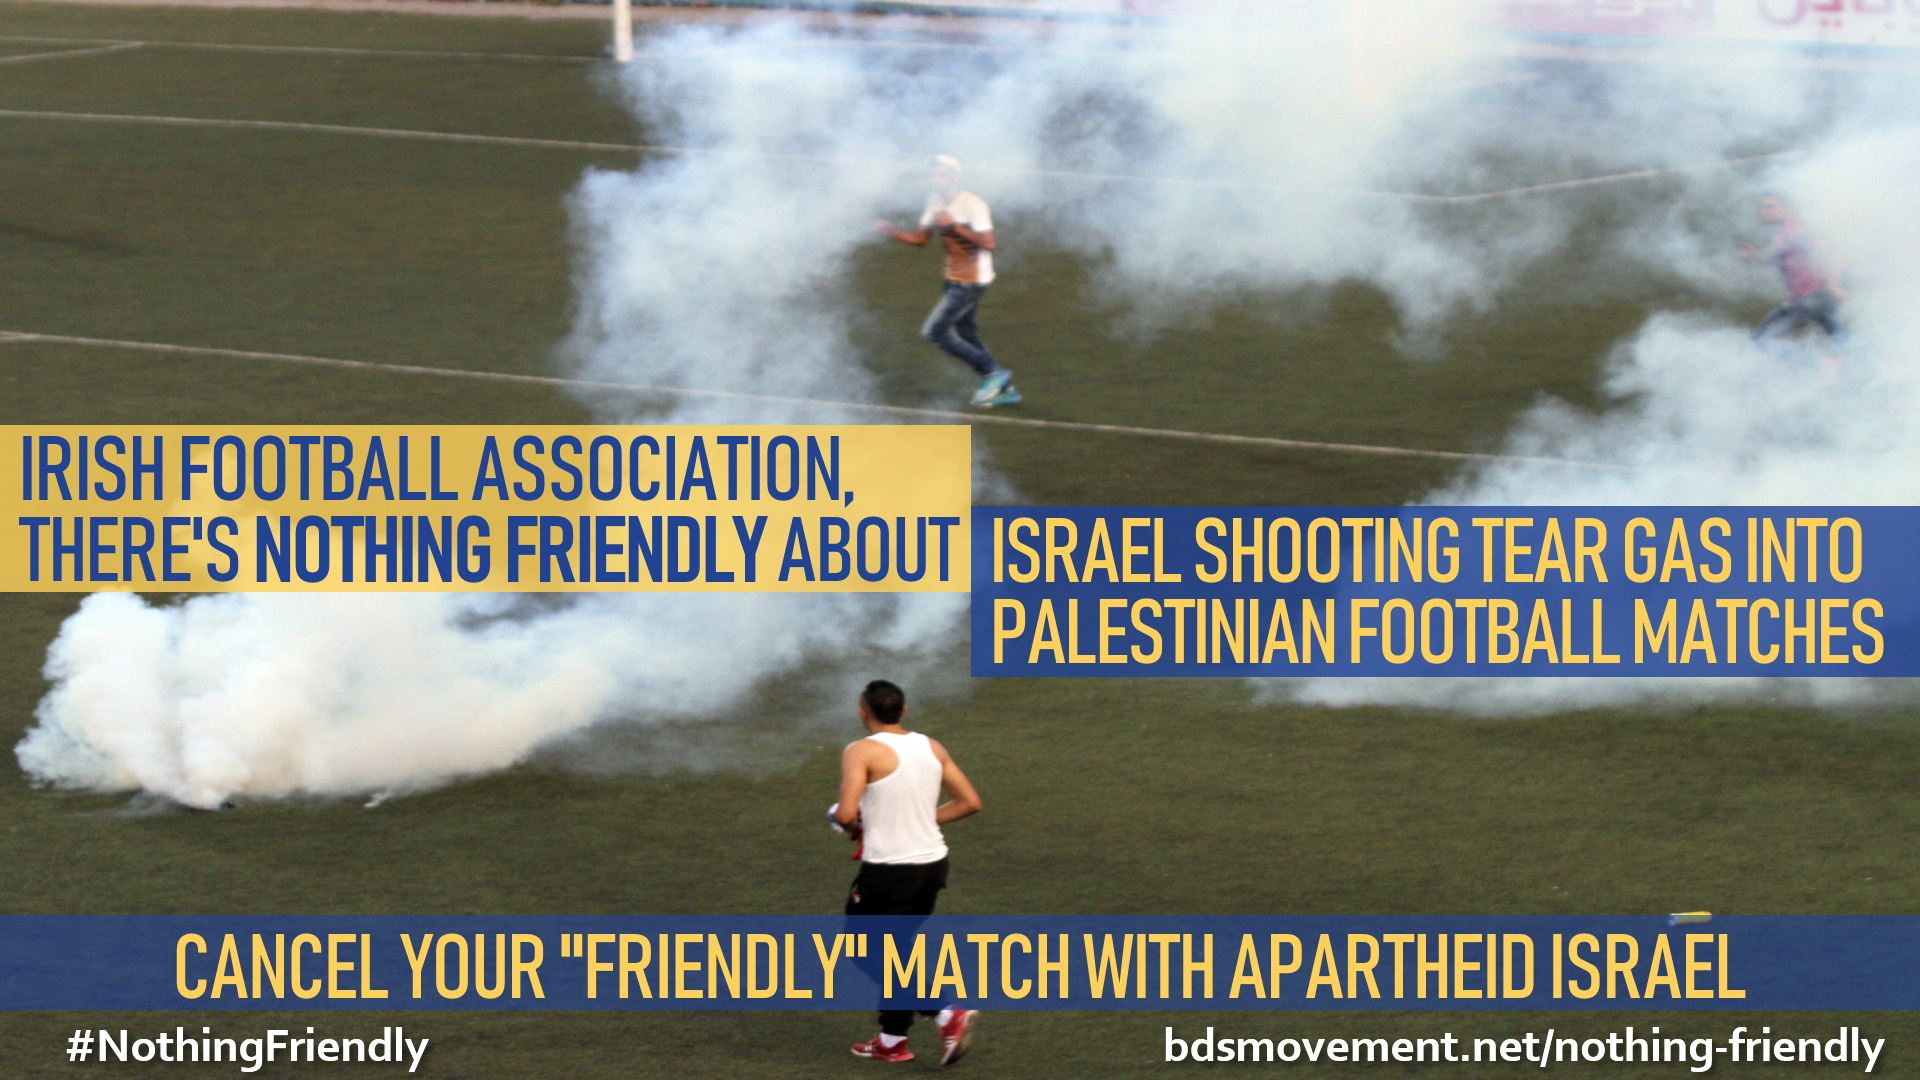 Irish Football Assoc, there's nothing friendly about shooting teargas into Palestinian football matches